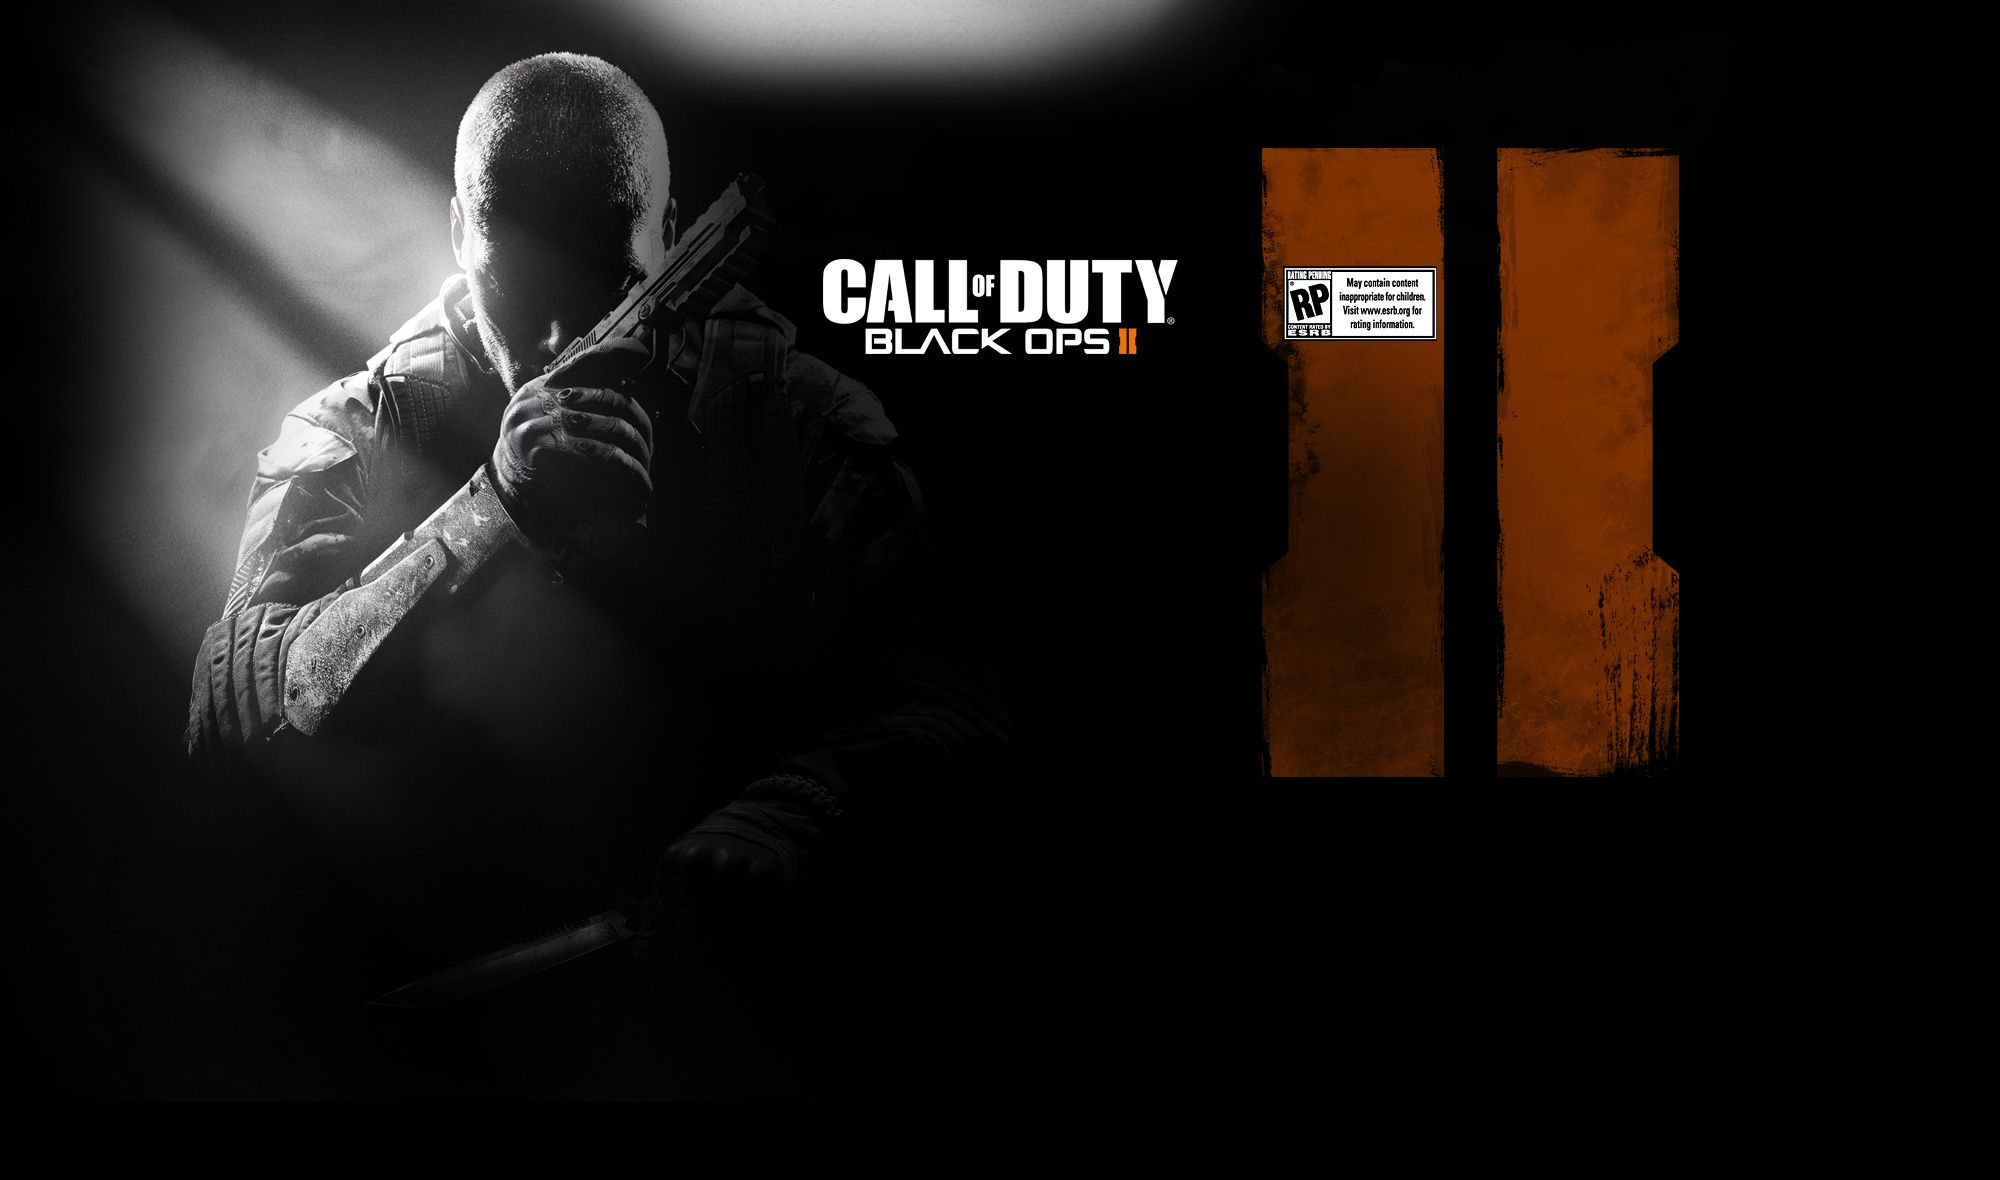 Call Of Duty: Black Ops HD Wallpapers  Backgrounds  Wallpaper 2000x1180